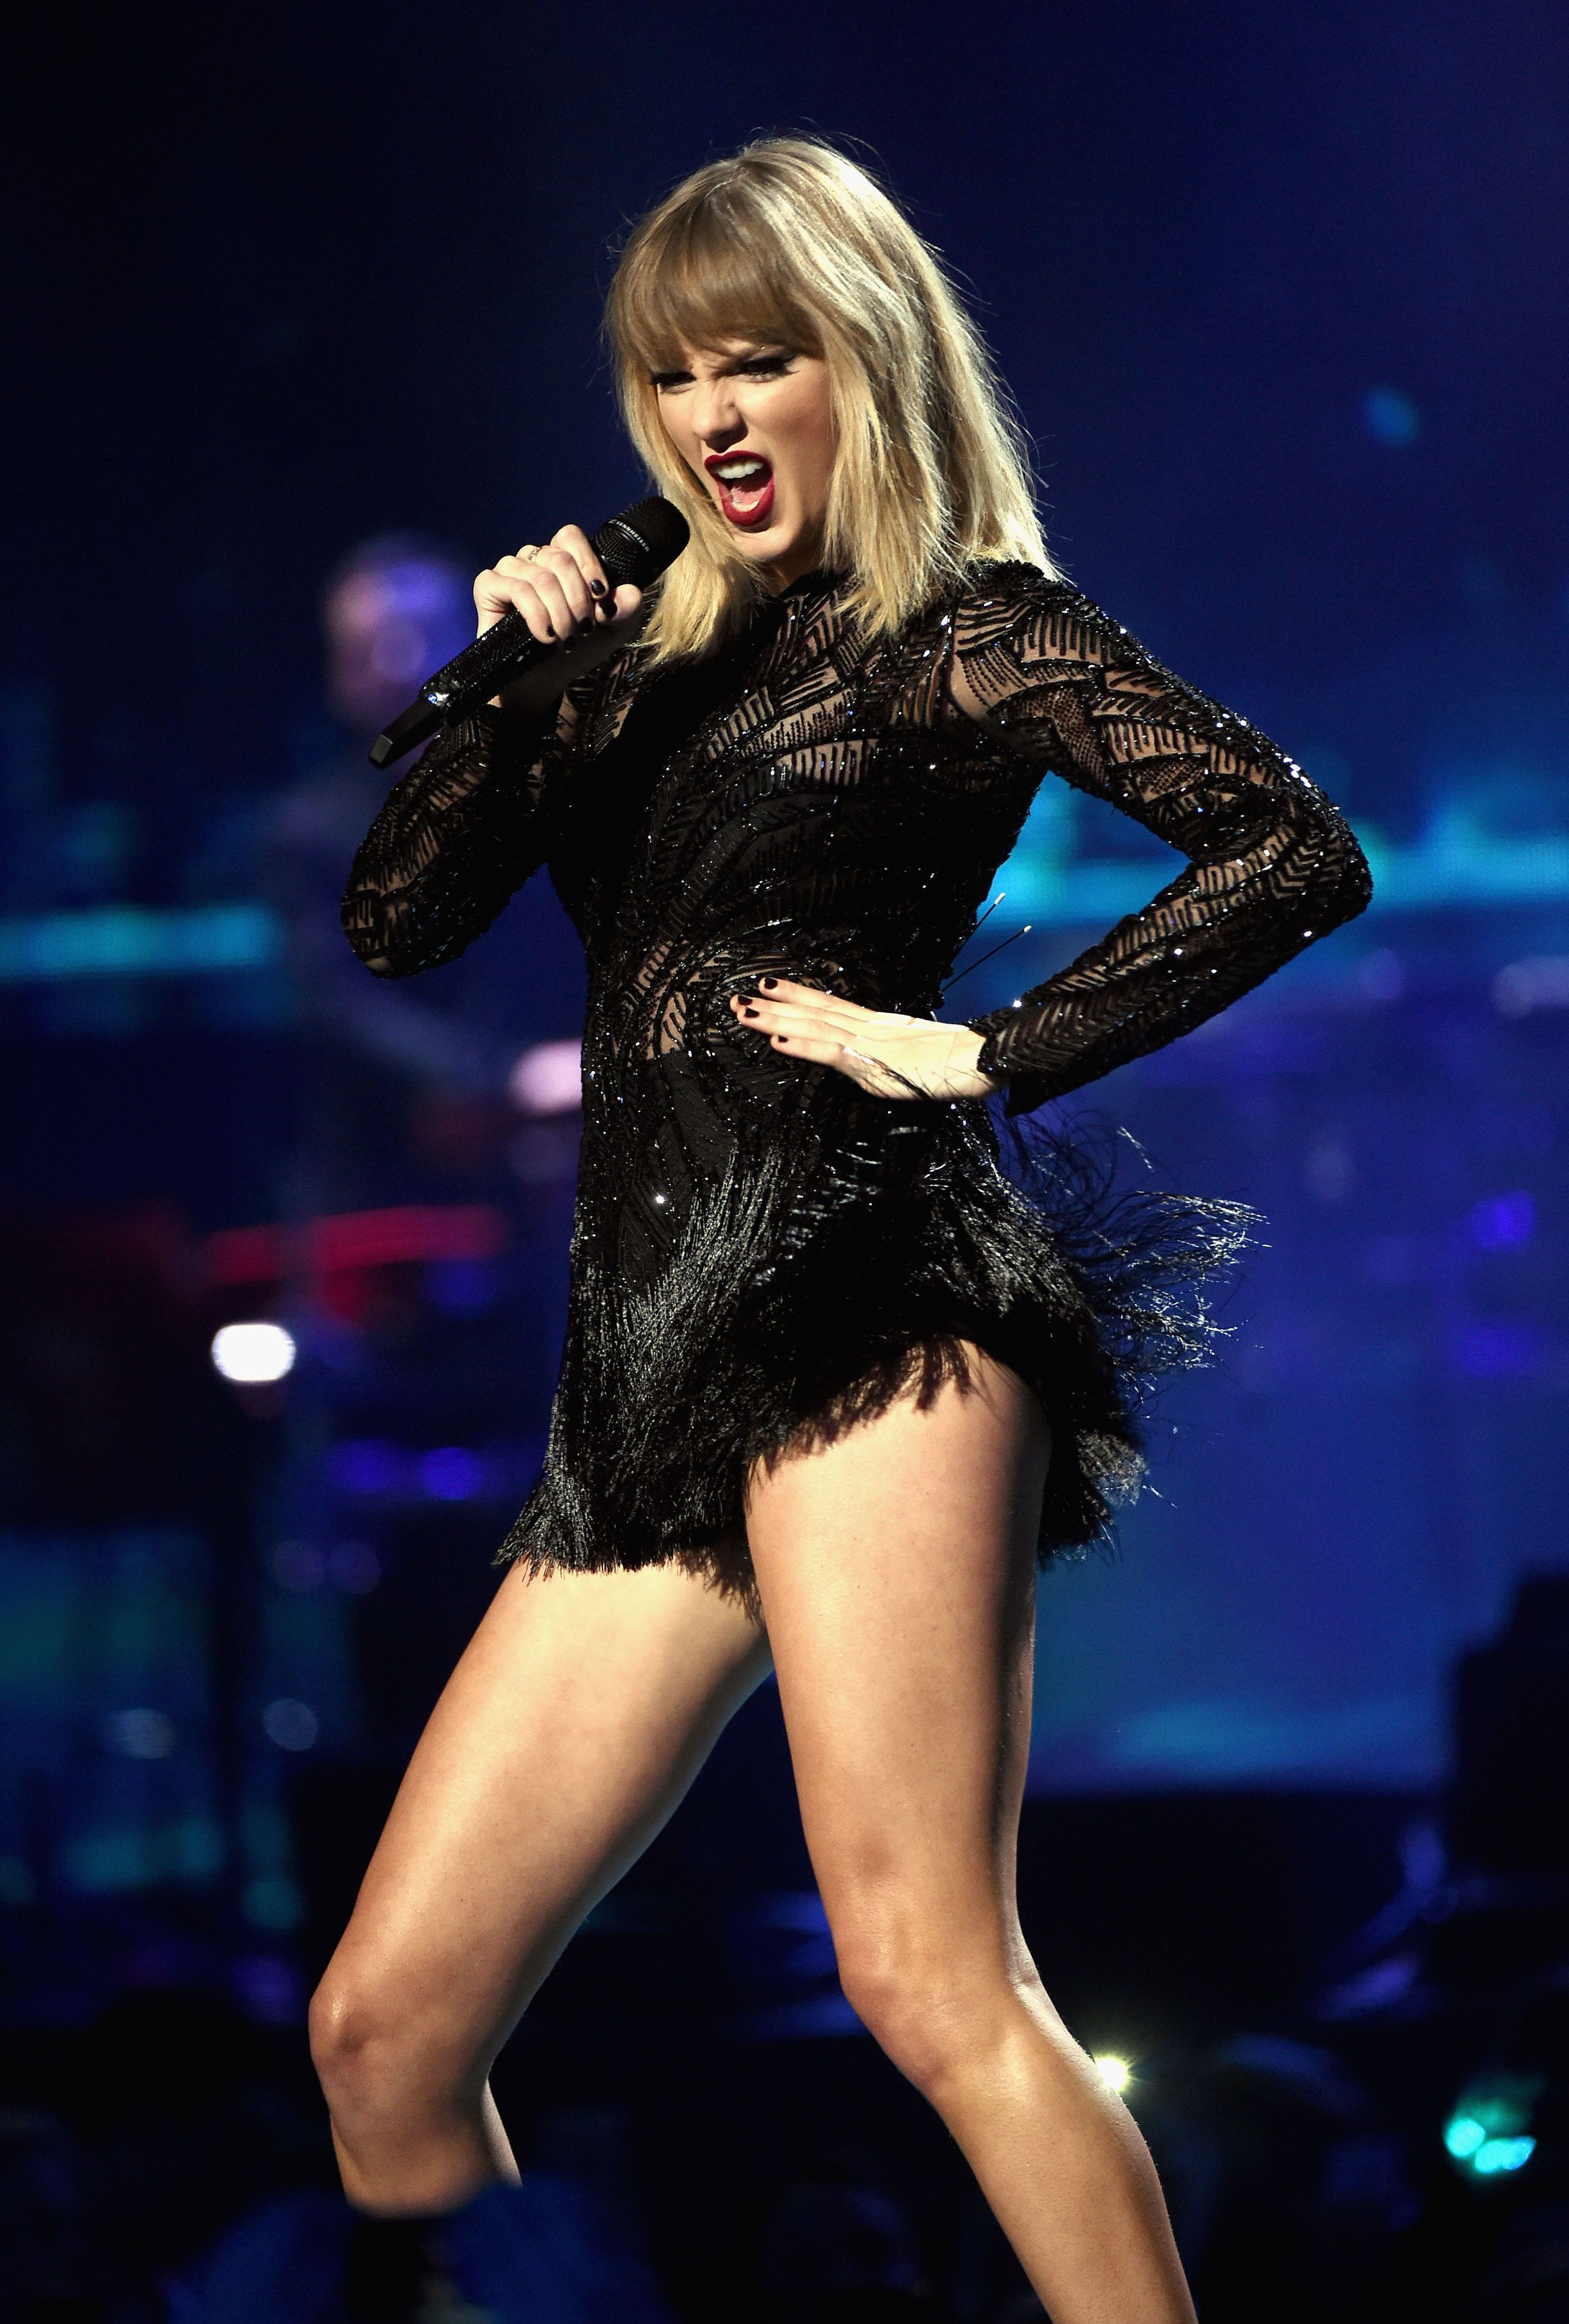 Naked pics of taylor swift pic 267